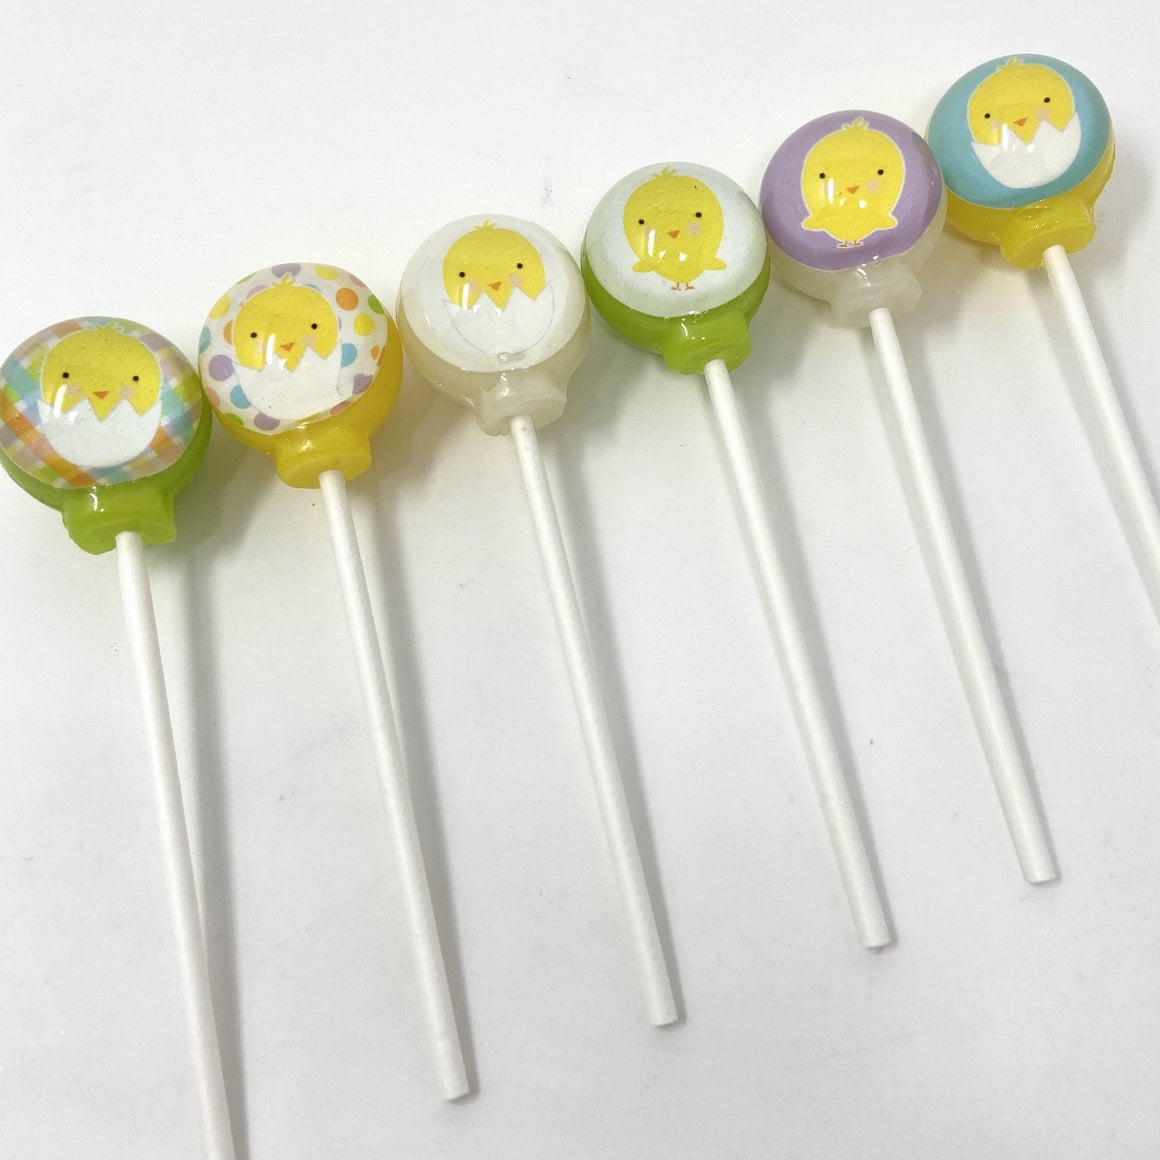 Baby Chicks set of 6 lollipops by I Want Candy!